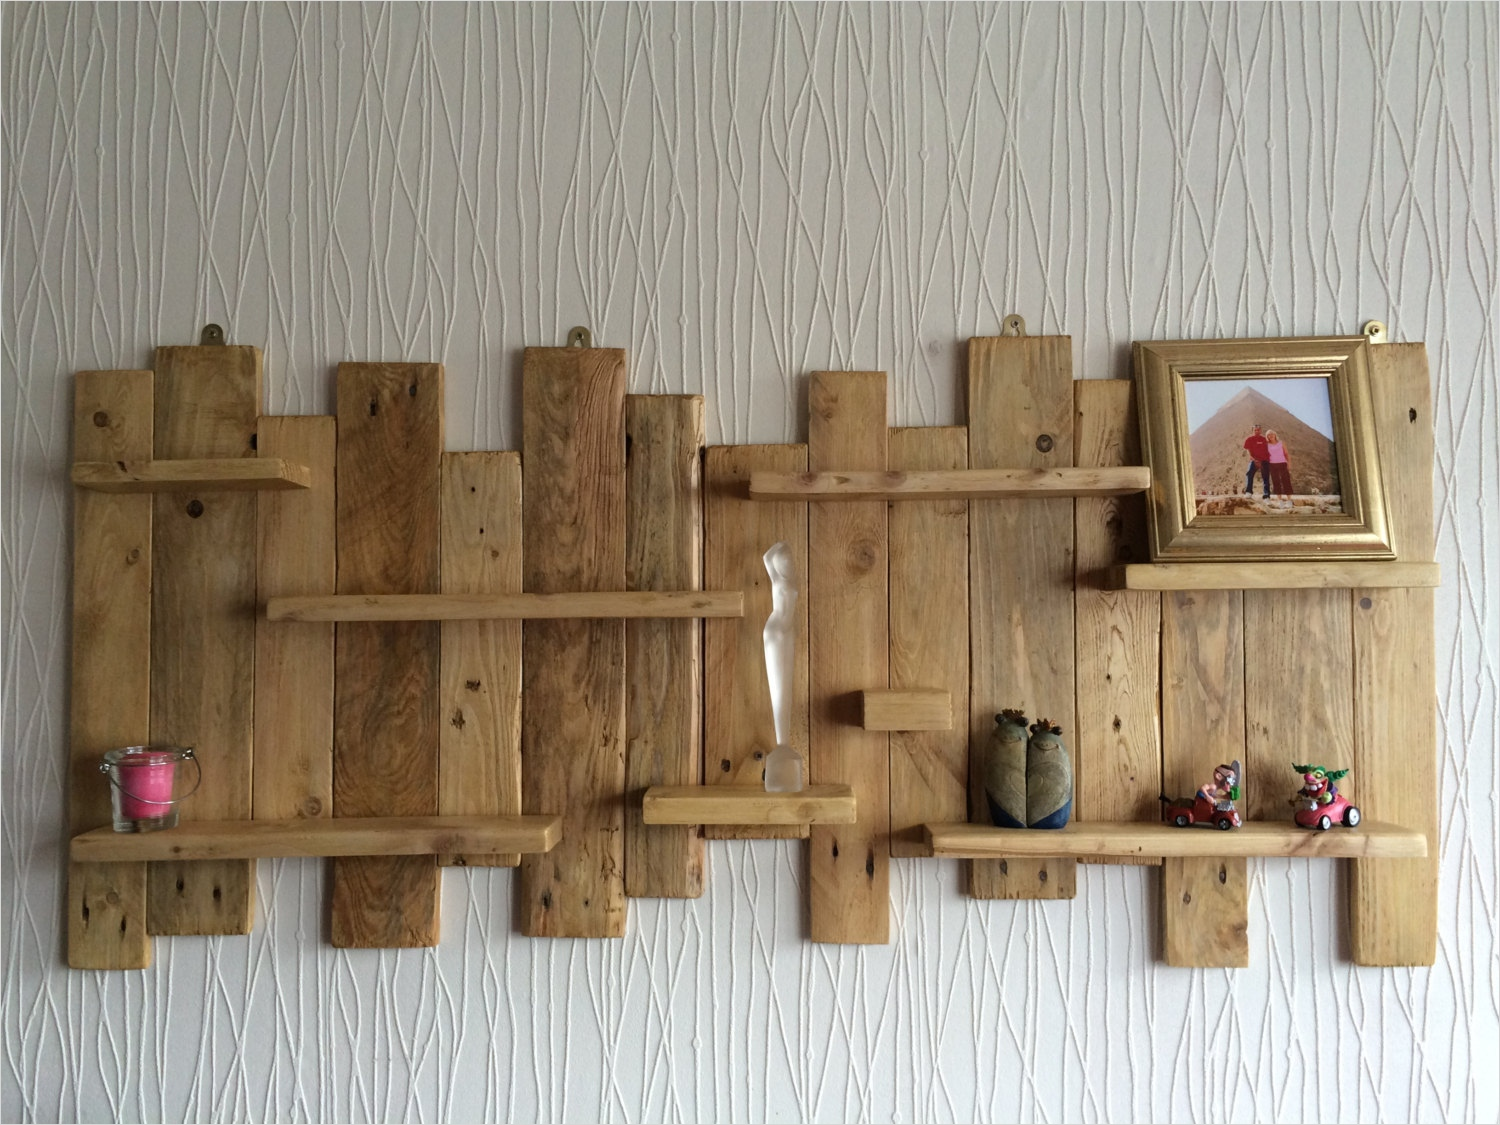 45 Creative Rustic Wall Mounted Bookshelves 61 Pallet Wall Mounted Shelf Unit Rustic and Handmade From 1